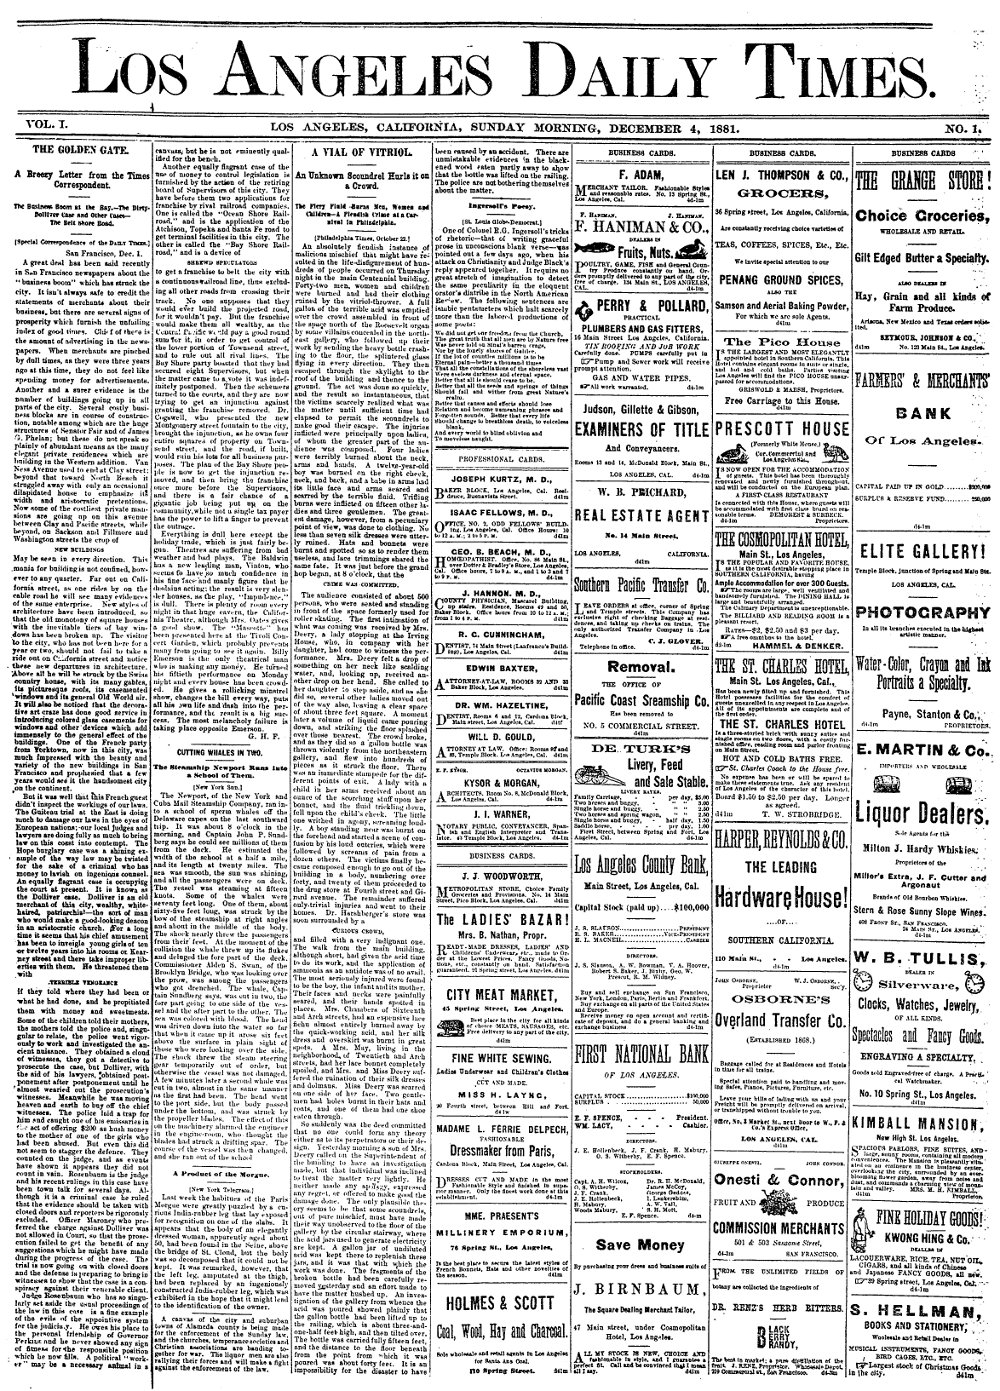 1881-12-04-firstpaper_1